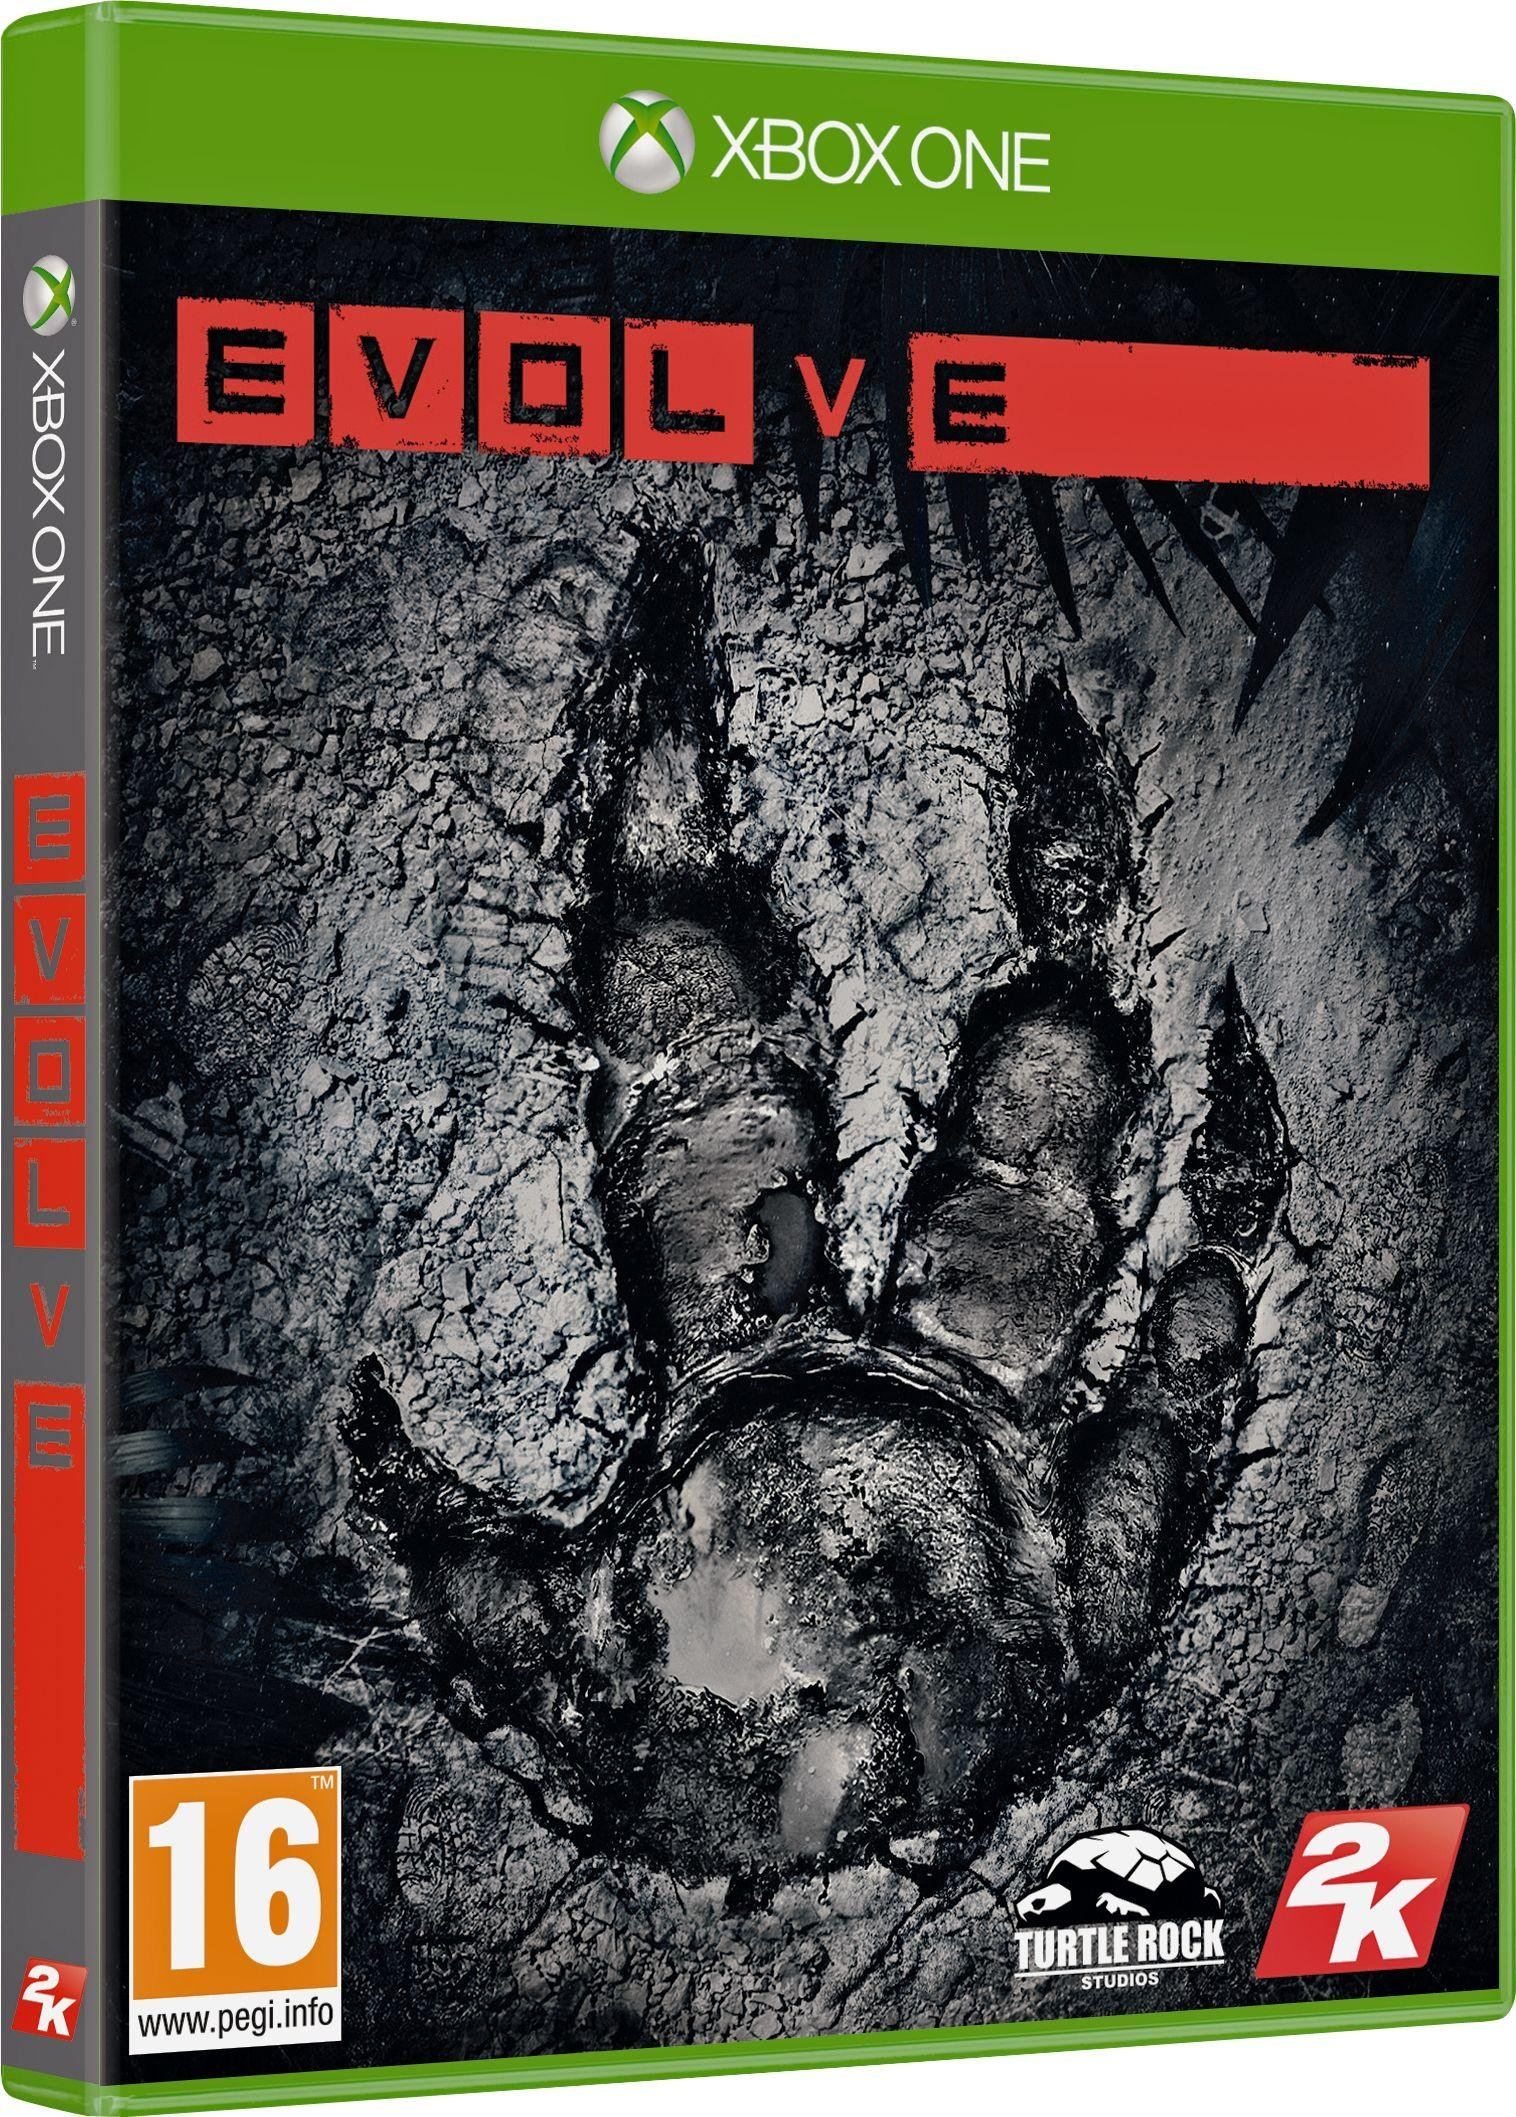 Image of Evolve Xbox One Game.